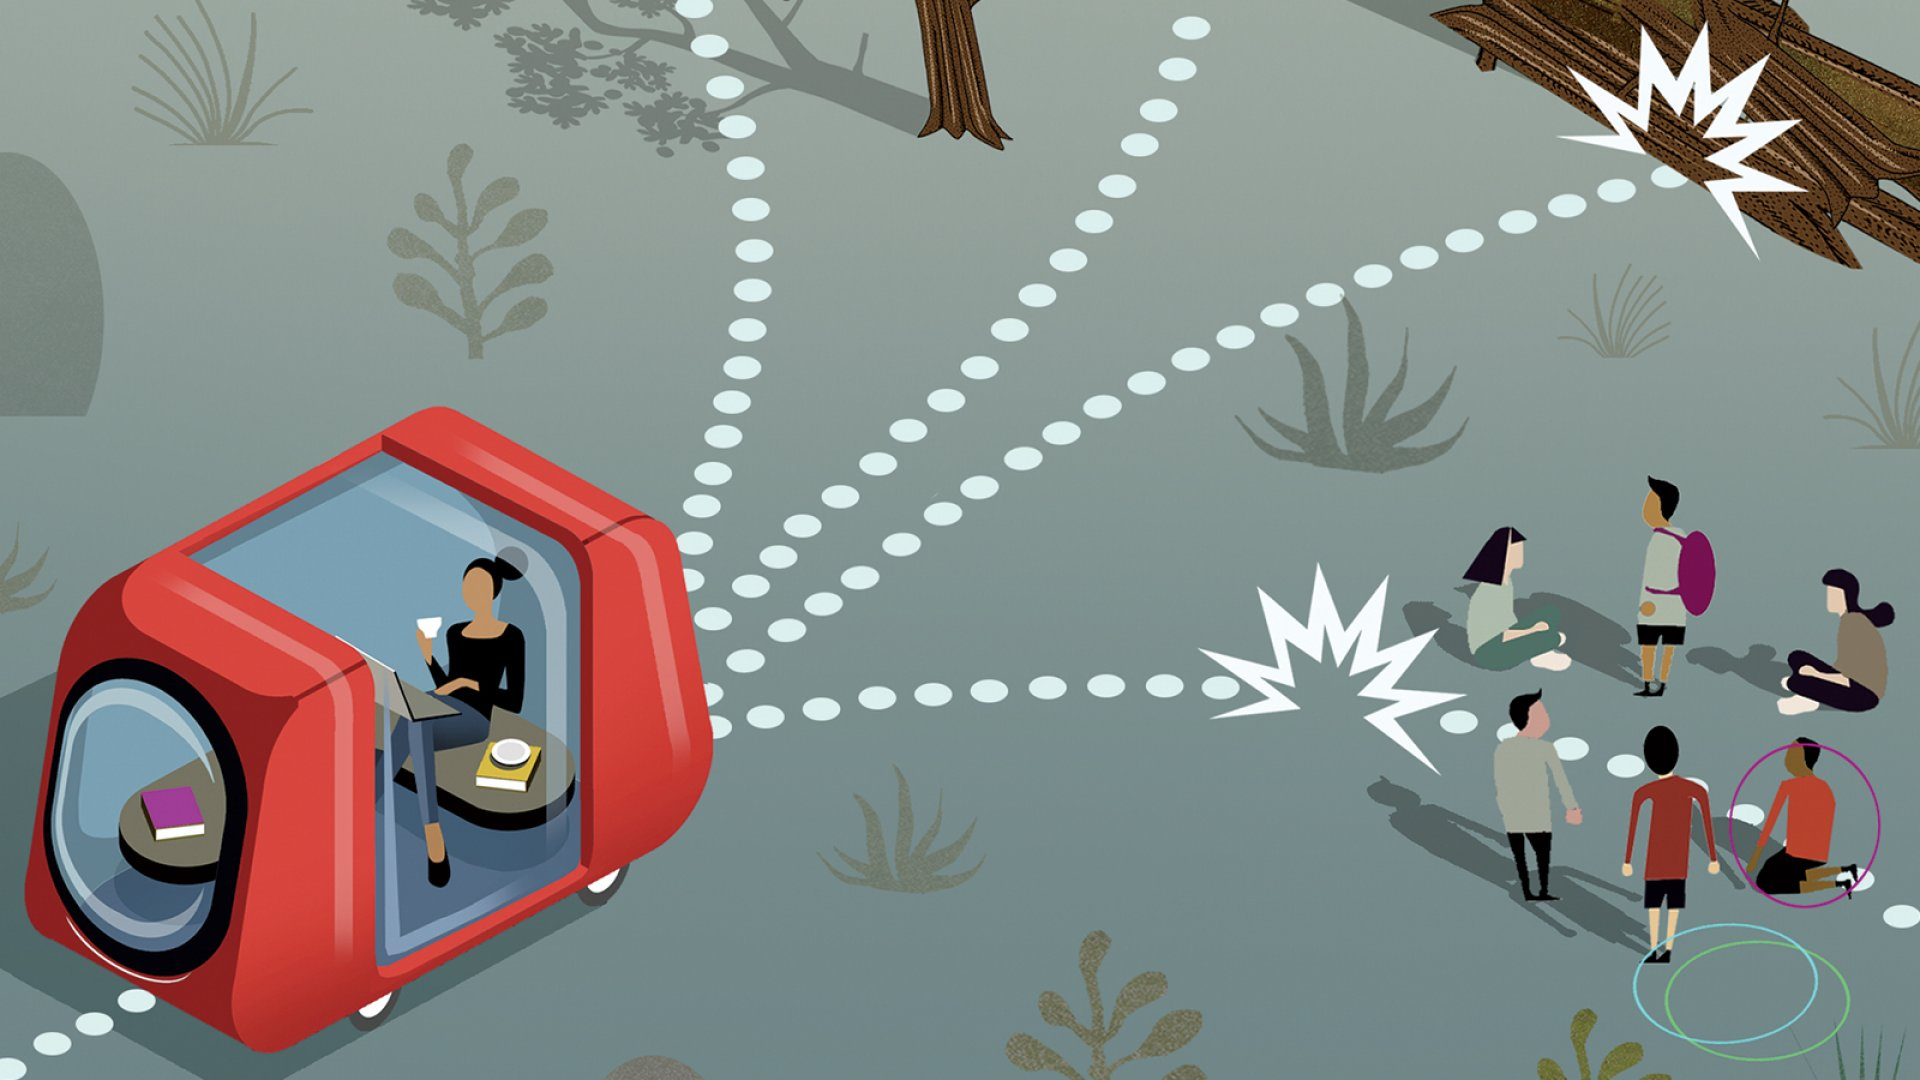 Sure, Self-Driving Cars Are Smart. But Can They Learn Ethics?